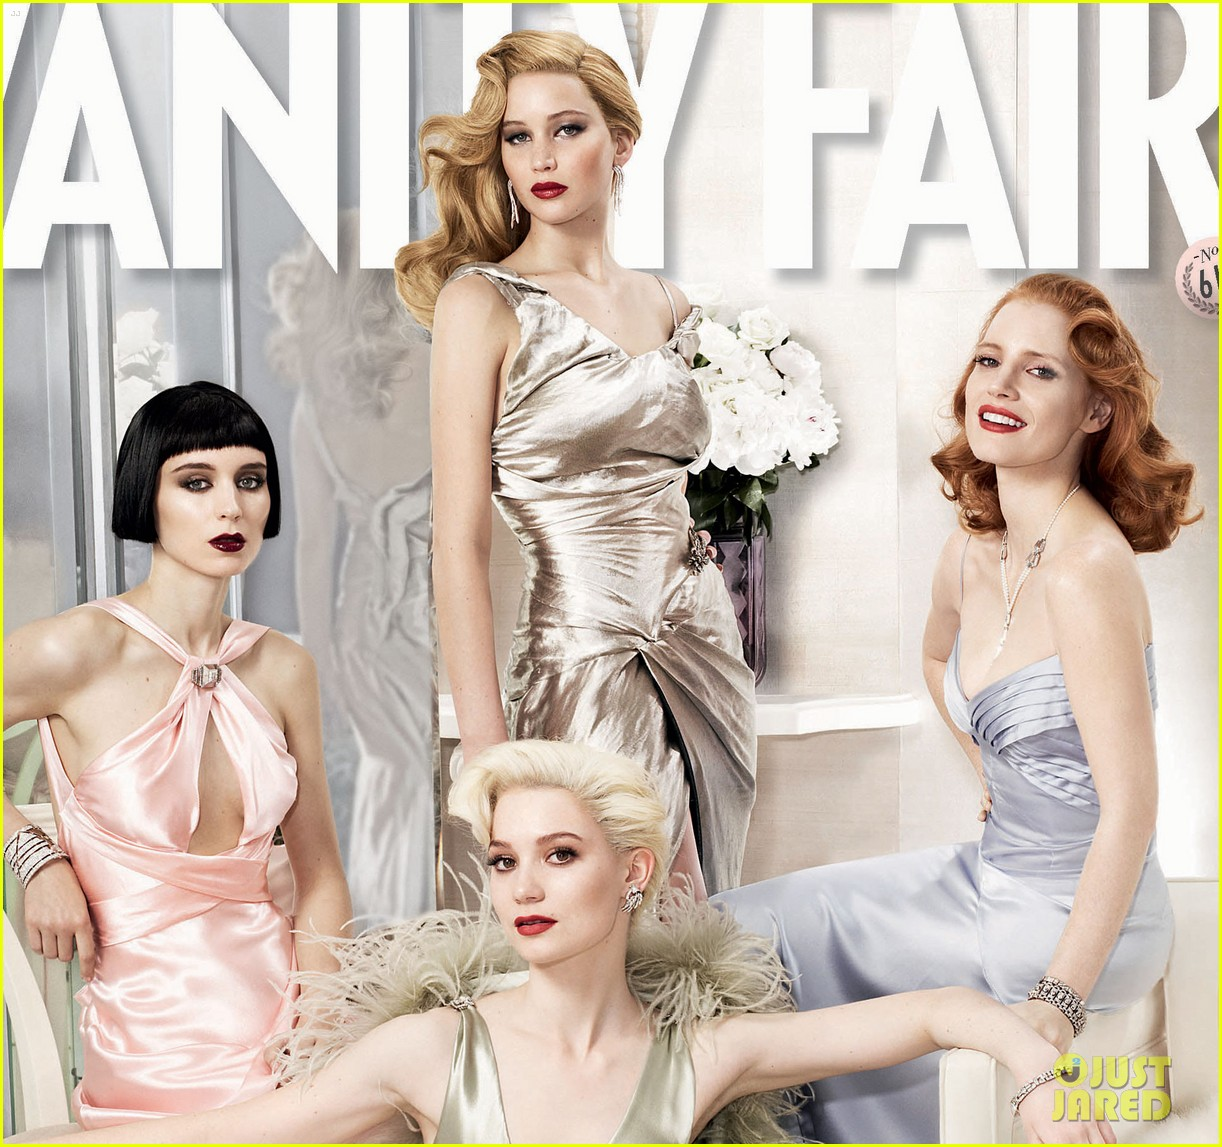 http://3.bp.blogspot.com/-WgRMhn2qxXQ/Tygyg1aqXUI/AAAAAAAAC4U/0ypygkFzRho/s1600/vanity-fair-hollywood-issue-2012-01.jpg